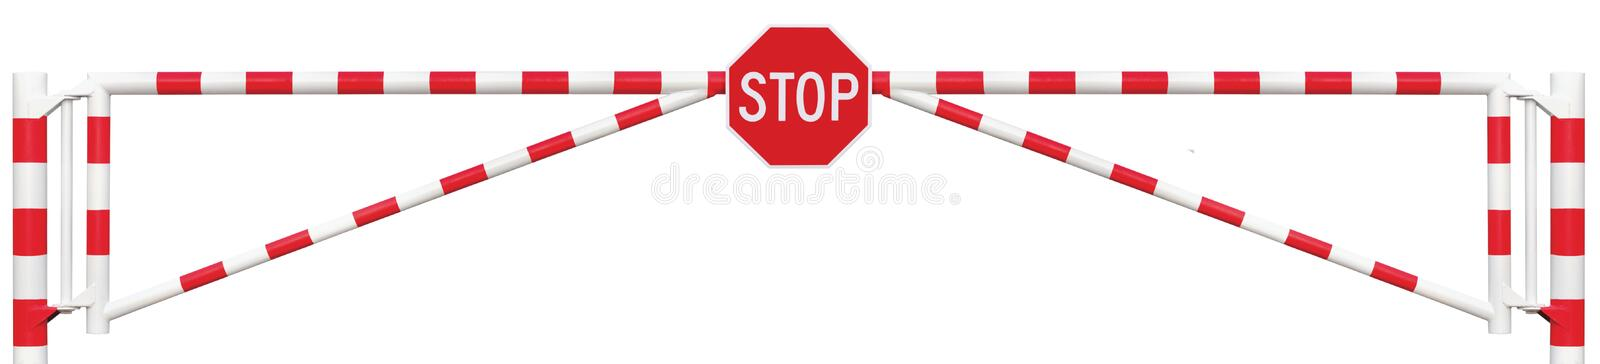 Gated Road Barrier Closeup, Octagonal Stop Sign Roadway Gate Bar stock photo